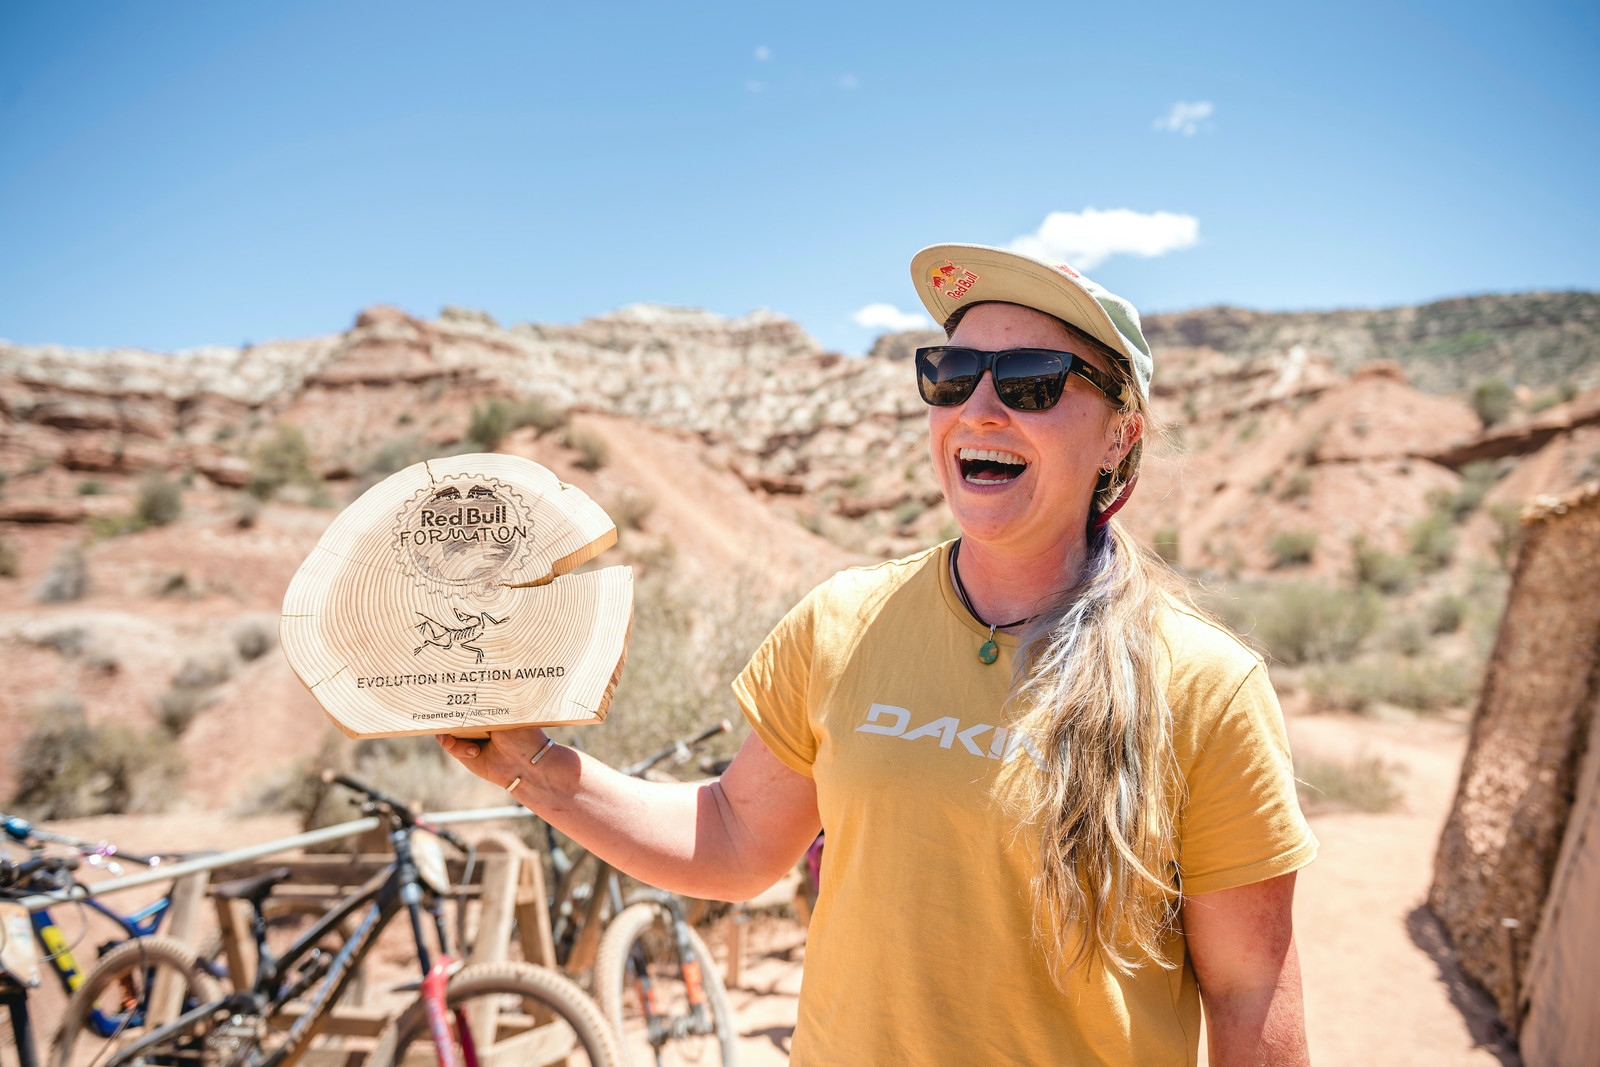 Hannah Bergemann receives the Evolution in Action Award presented by event sponsor Arc'Teryx at Red Bull Formation.